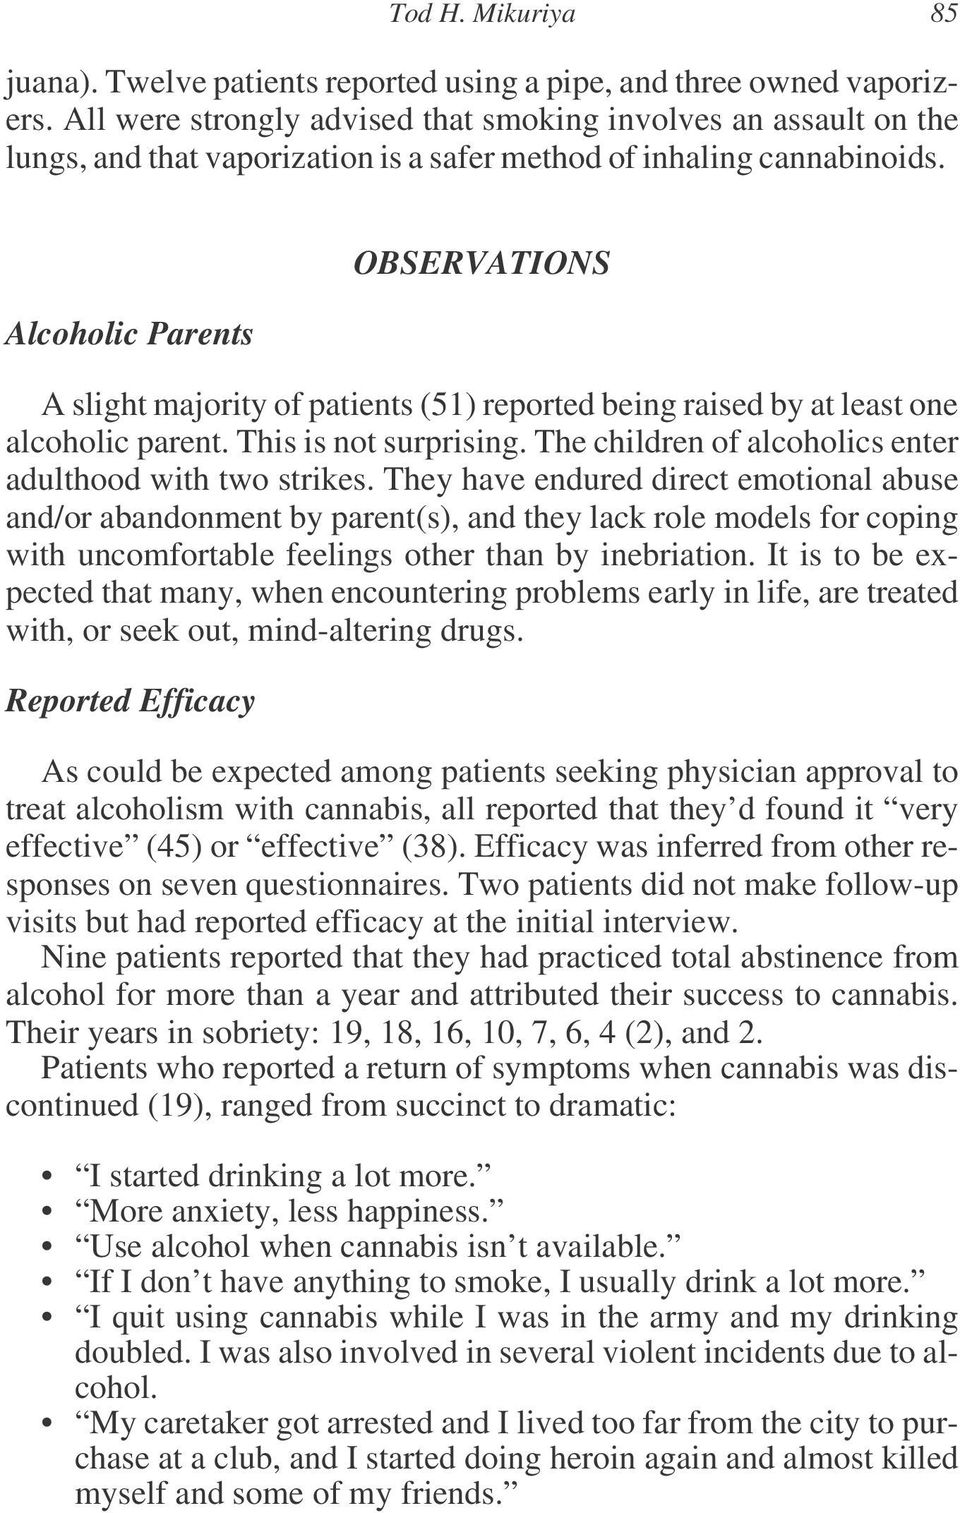 Alcoholic Parents OBSERVATIONS A slight majority of patients (51) reported being raised by at least one alcoholic parent. This is not surprising.